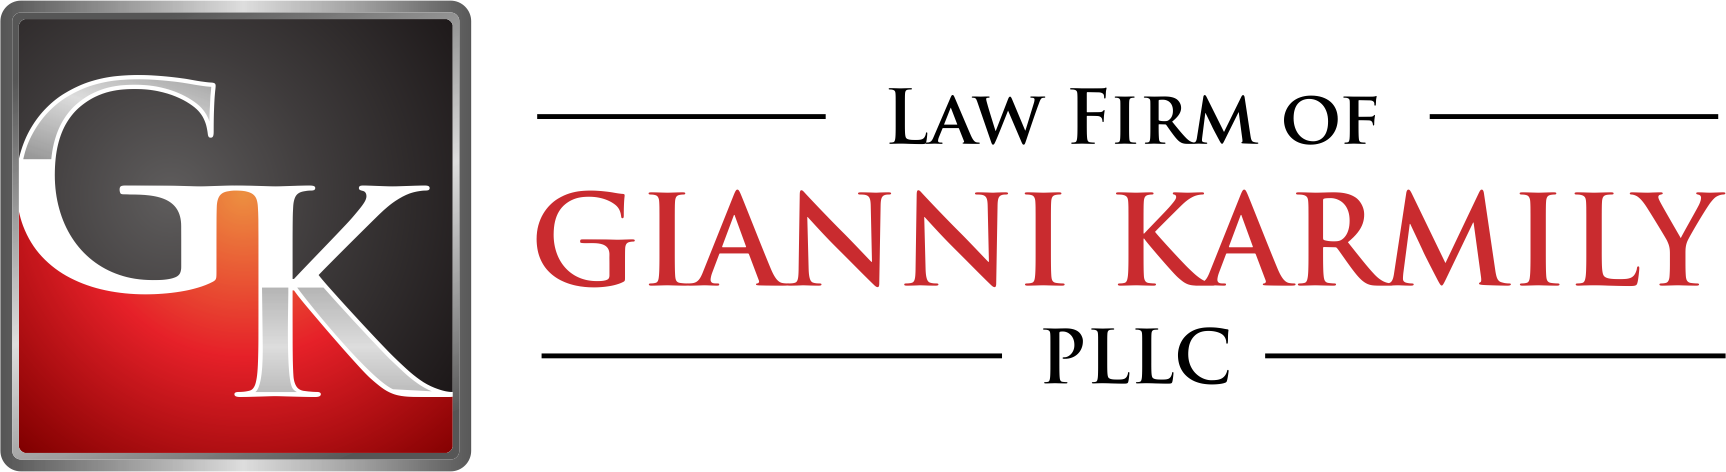 Law Firm of Gianni Karmily, PLLC, a Top Criminal Defense Law Firm in New York, Announces New Services for Hempstead